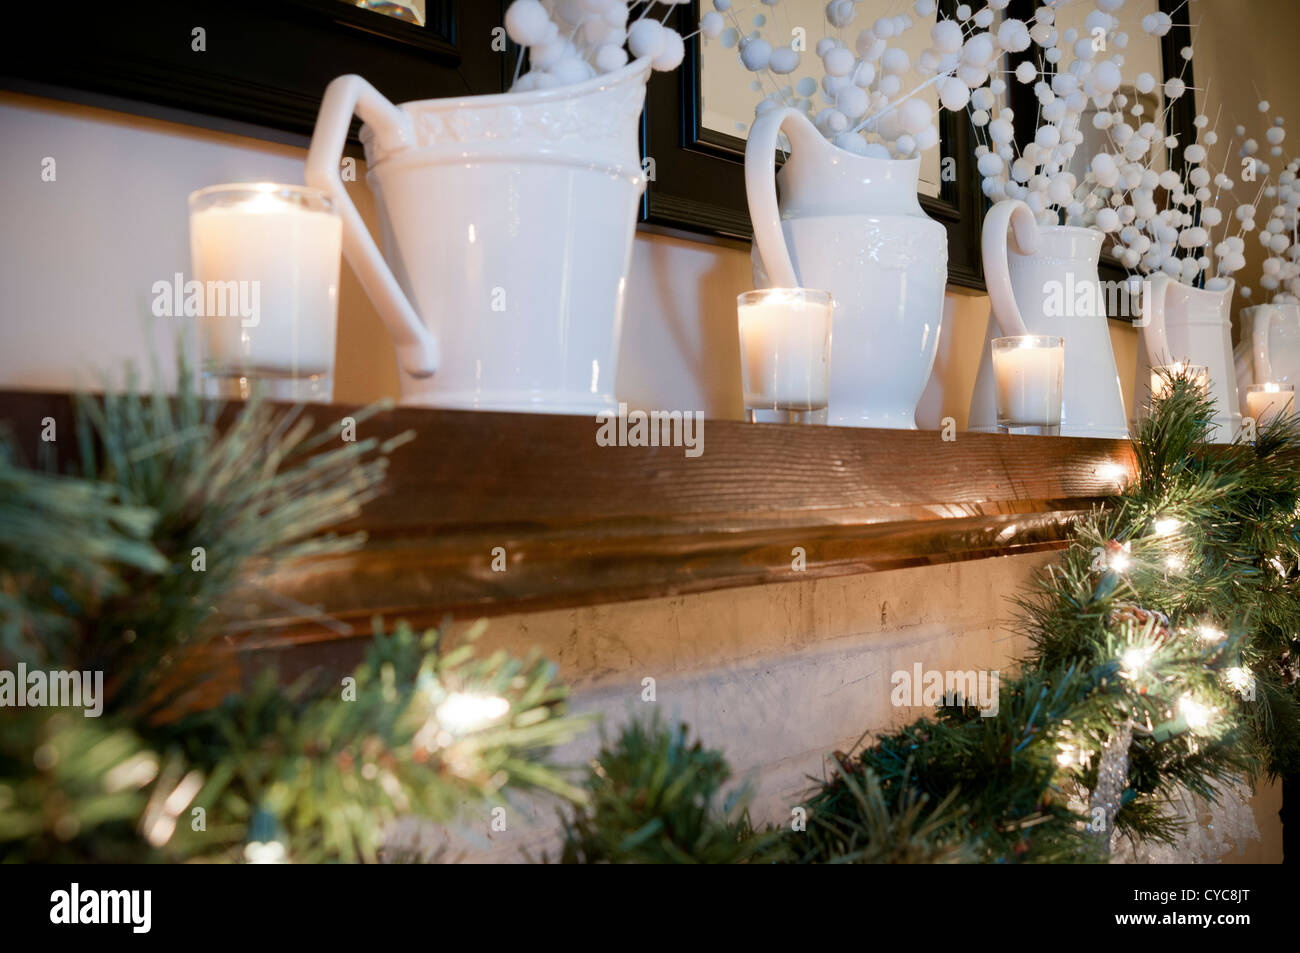 Christmas home decor around a fireplace mantle - Stock Image